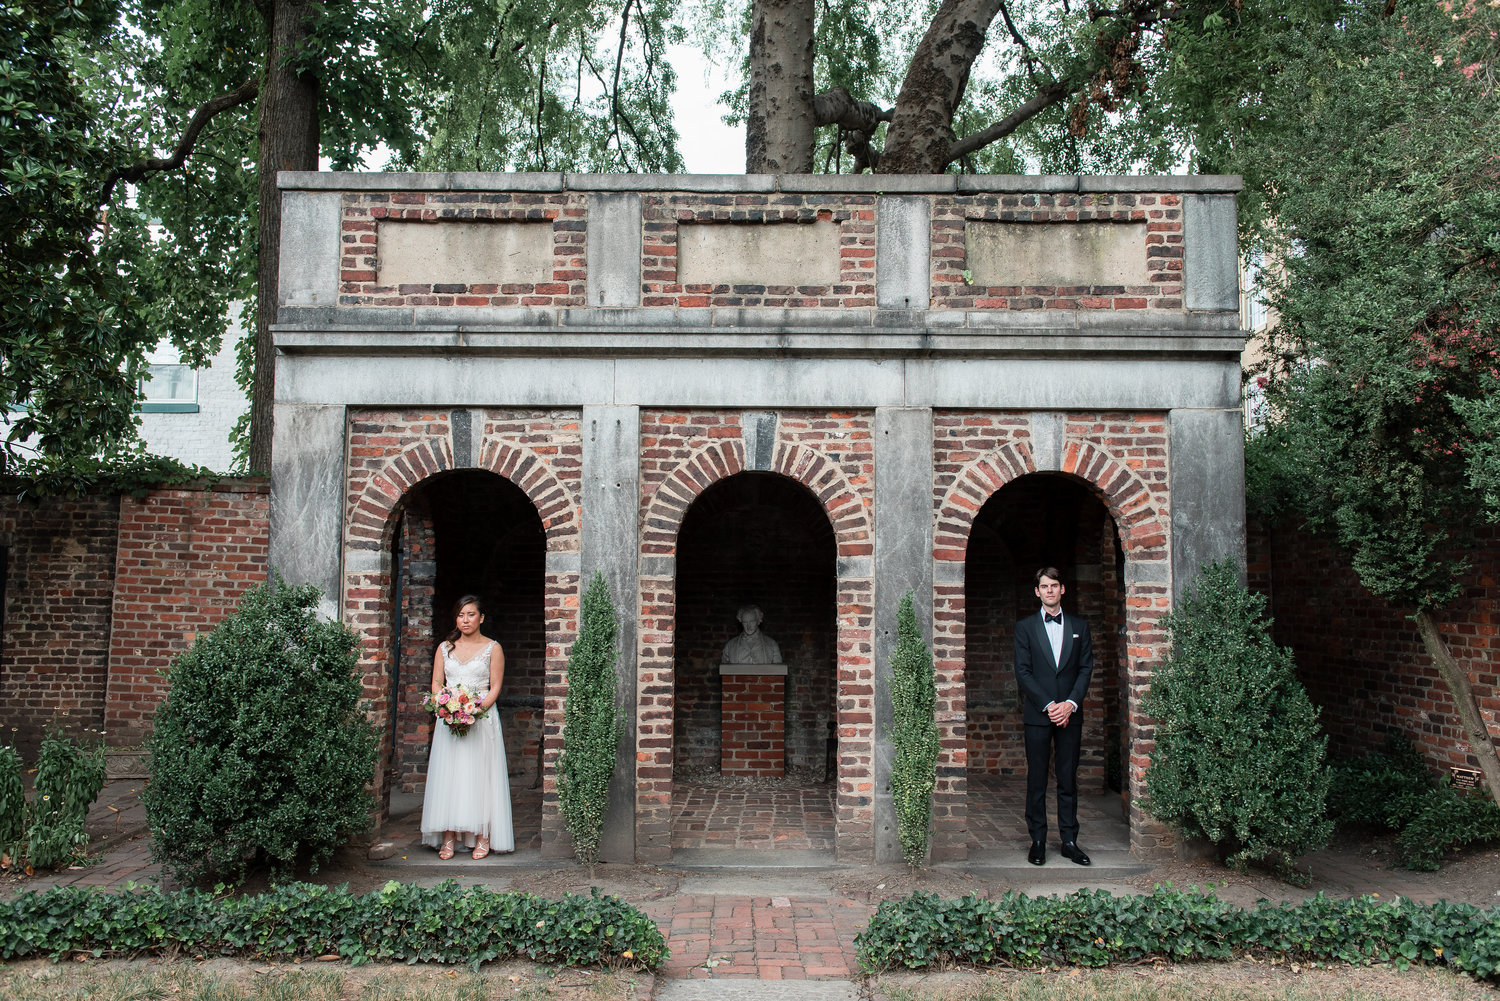 Ben and Christina at wedding standing in archway in garden at Poe Museum in Richmond Virginia